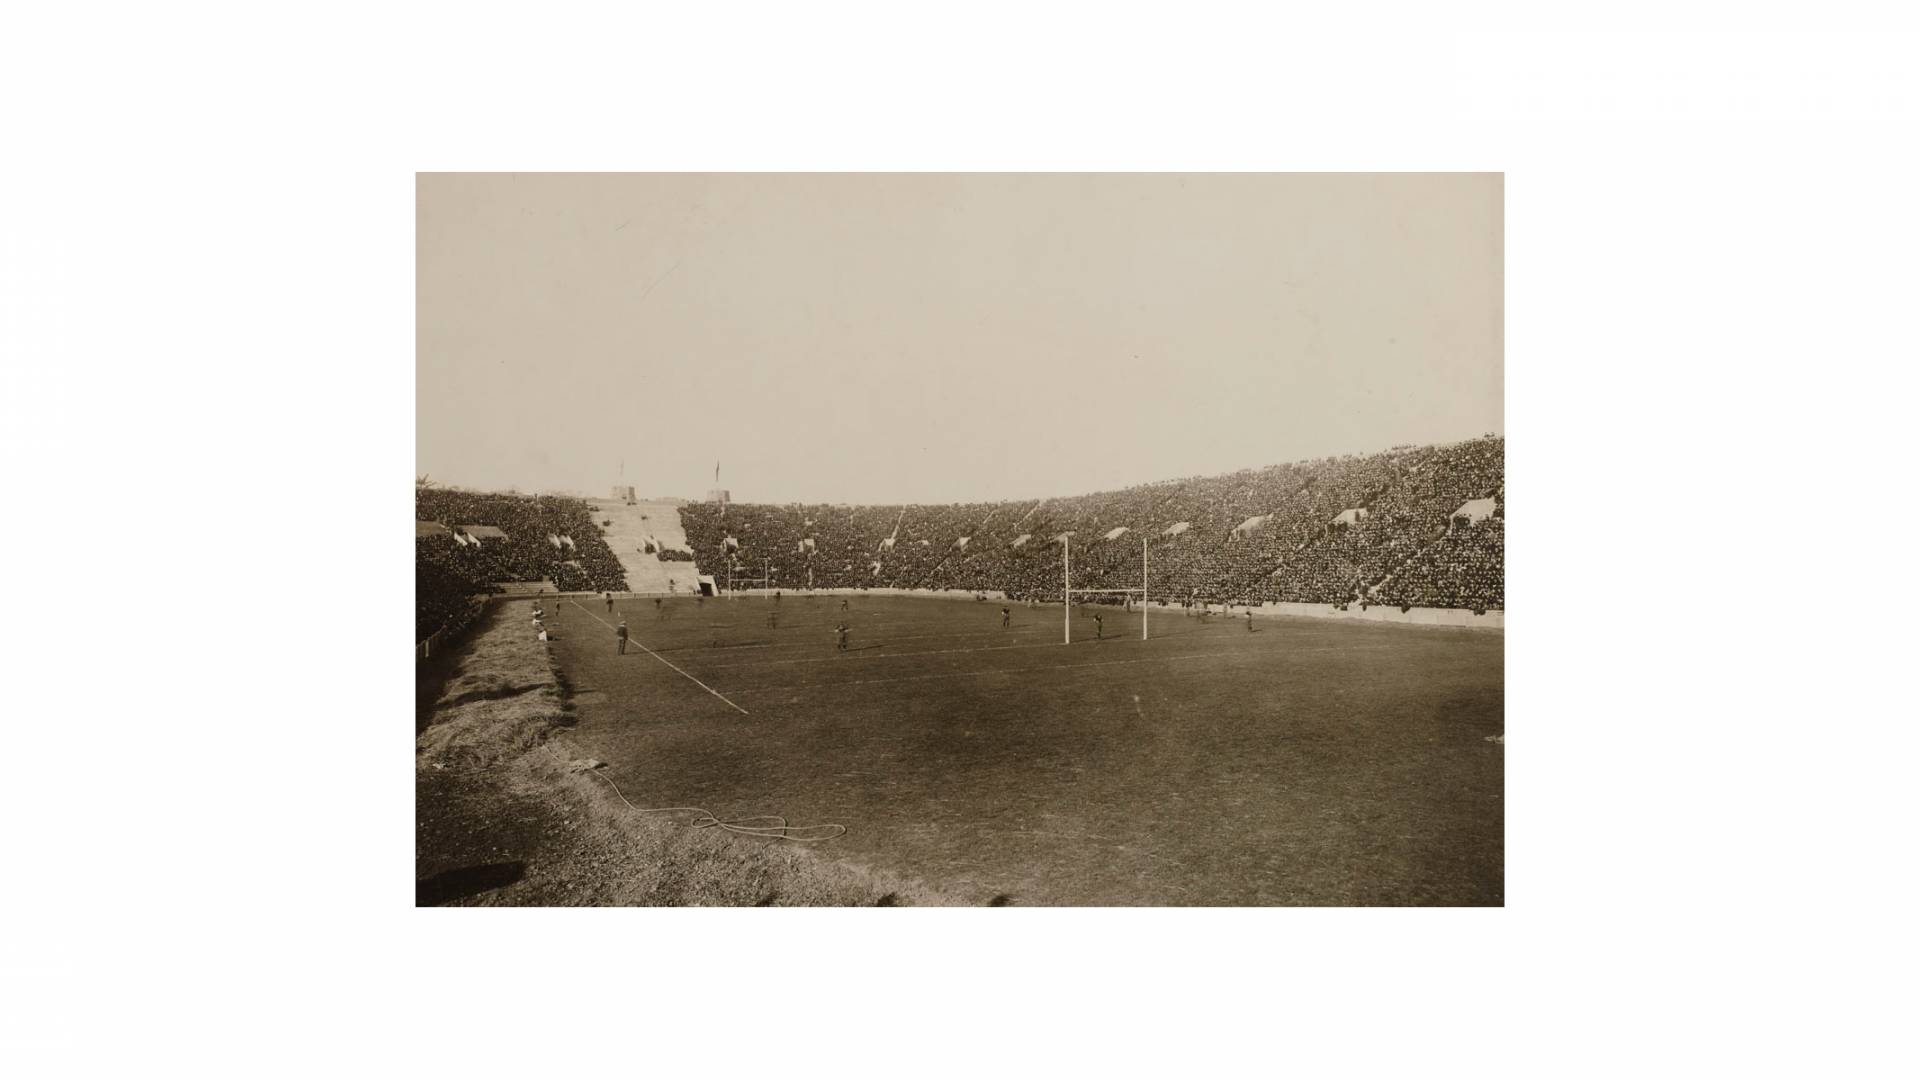 archival photo of football field